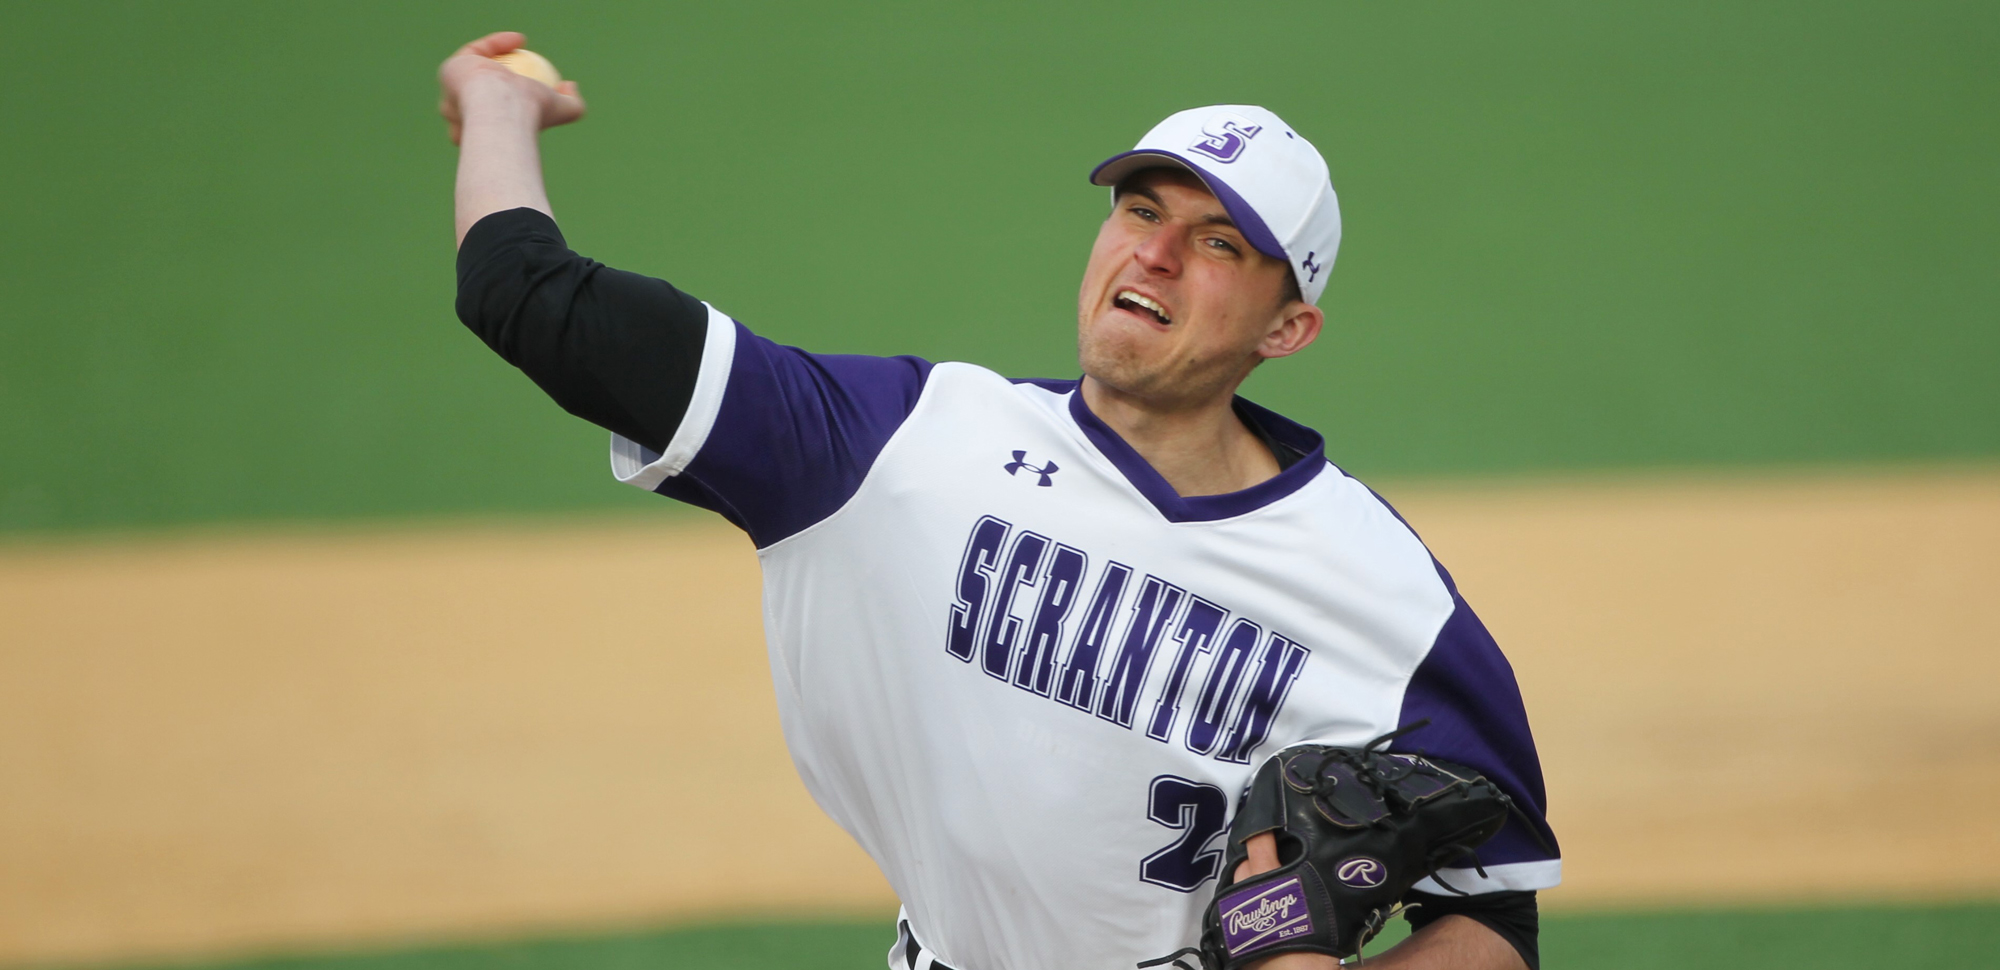 Junior Bobby Hegarty tossed a complete game in Scranton's game one win over Elizabethtown on Saturday. © Photo by Timothy R. Dougherty / doubleeaglephotography.com